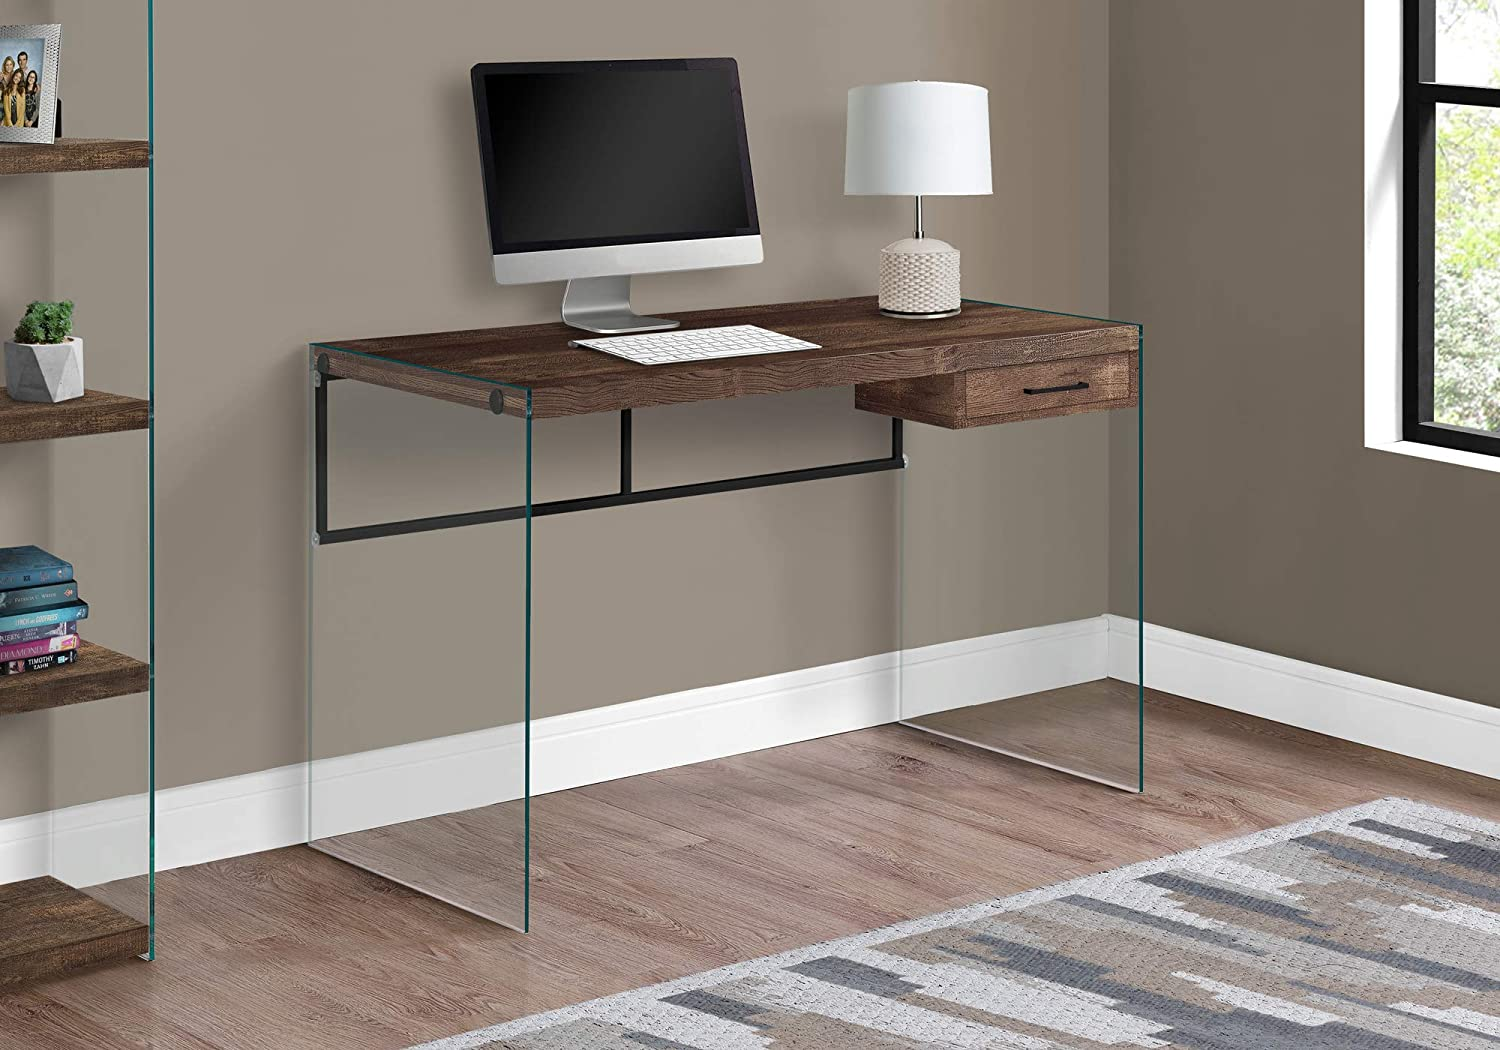 "Monarch Specialties Computer Desk - Contemporary Writing Desk with Drawer - Tempered Glass Legs - 48""L (Brown Reclaimed Wood Look)"